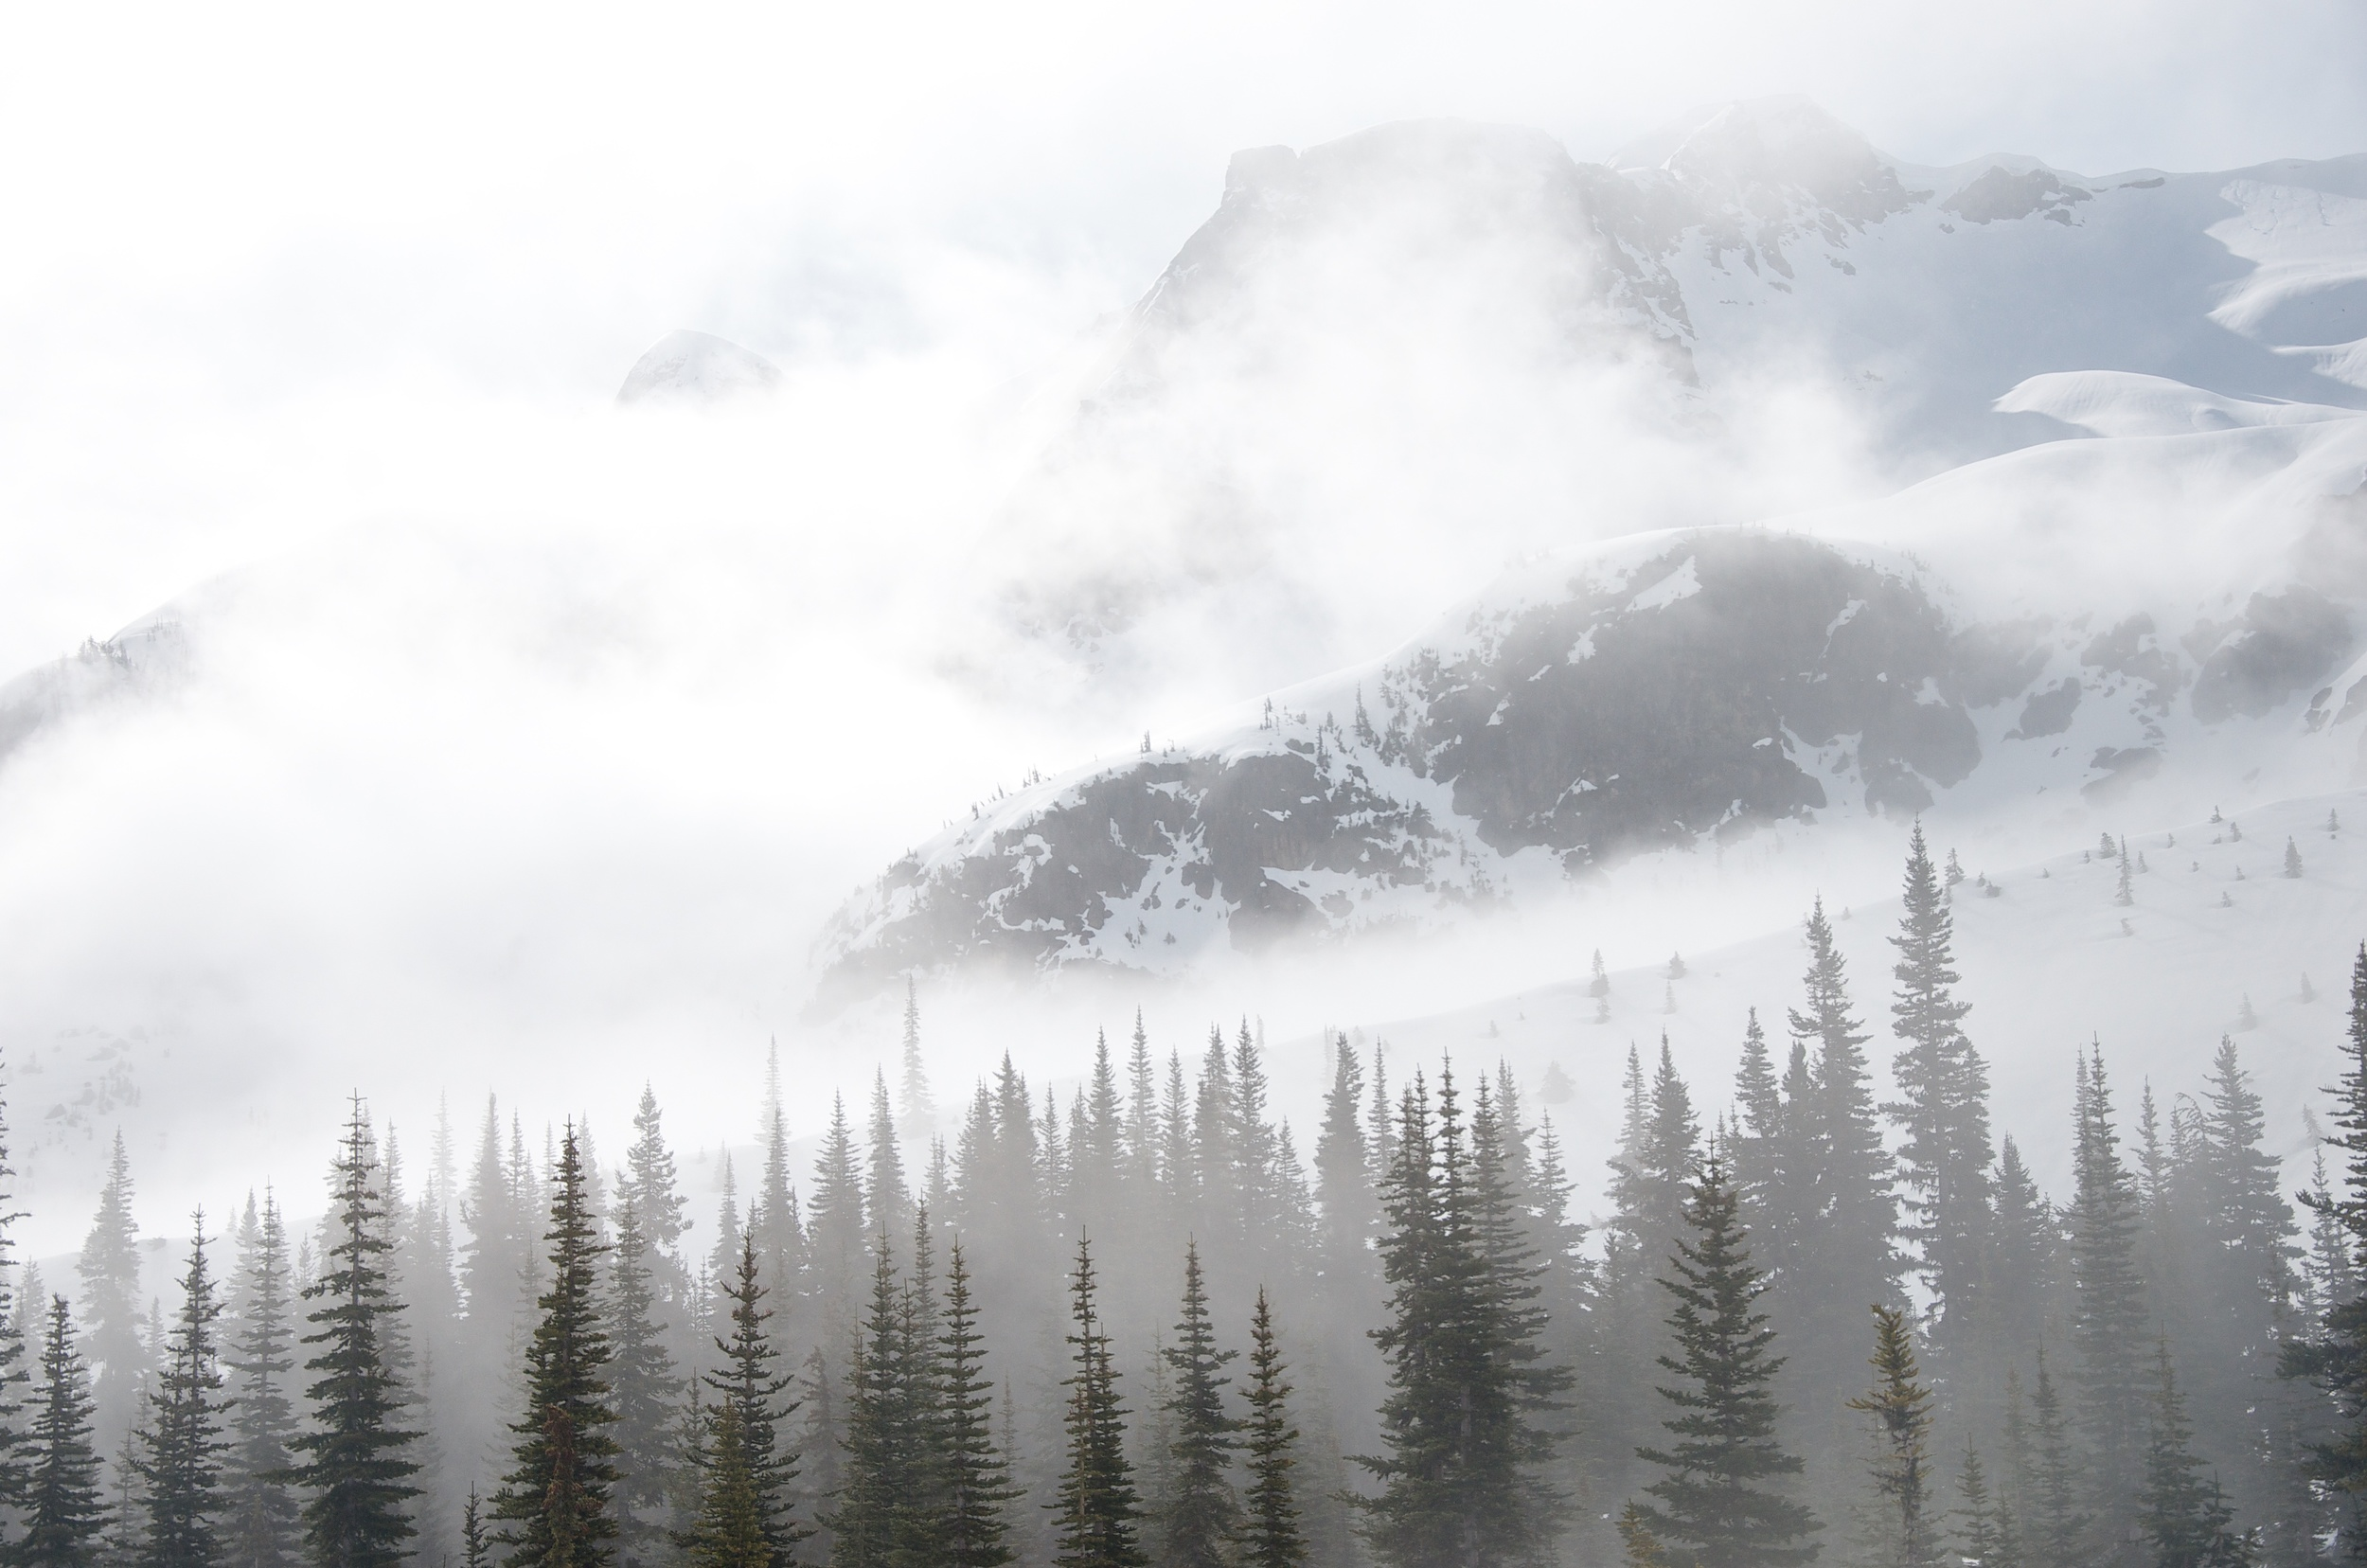 Morning near the Misty Icefields.